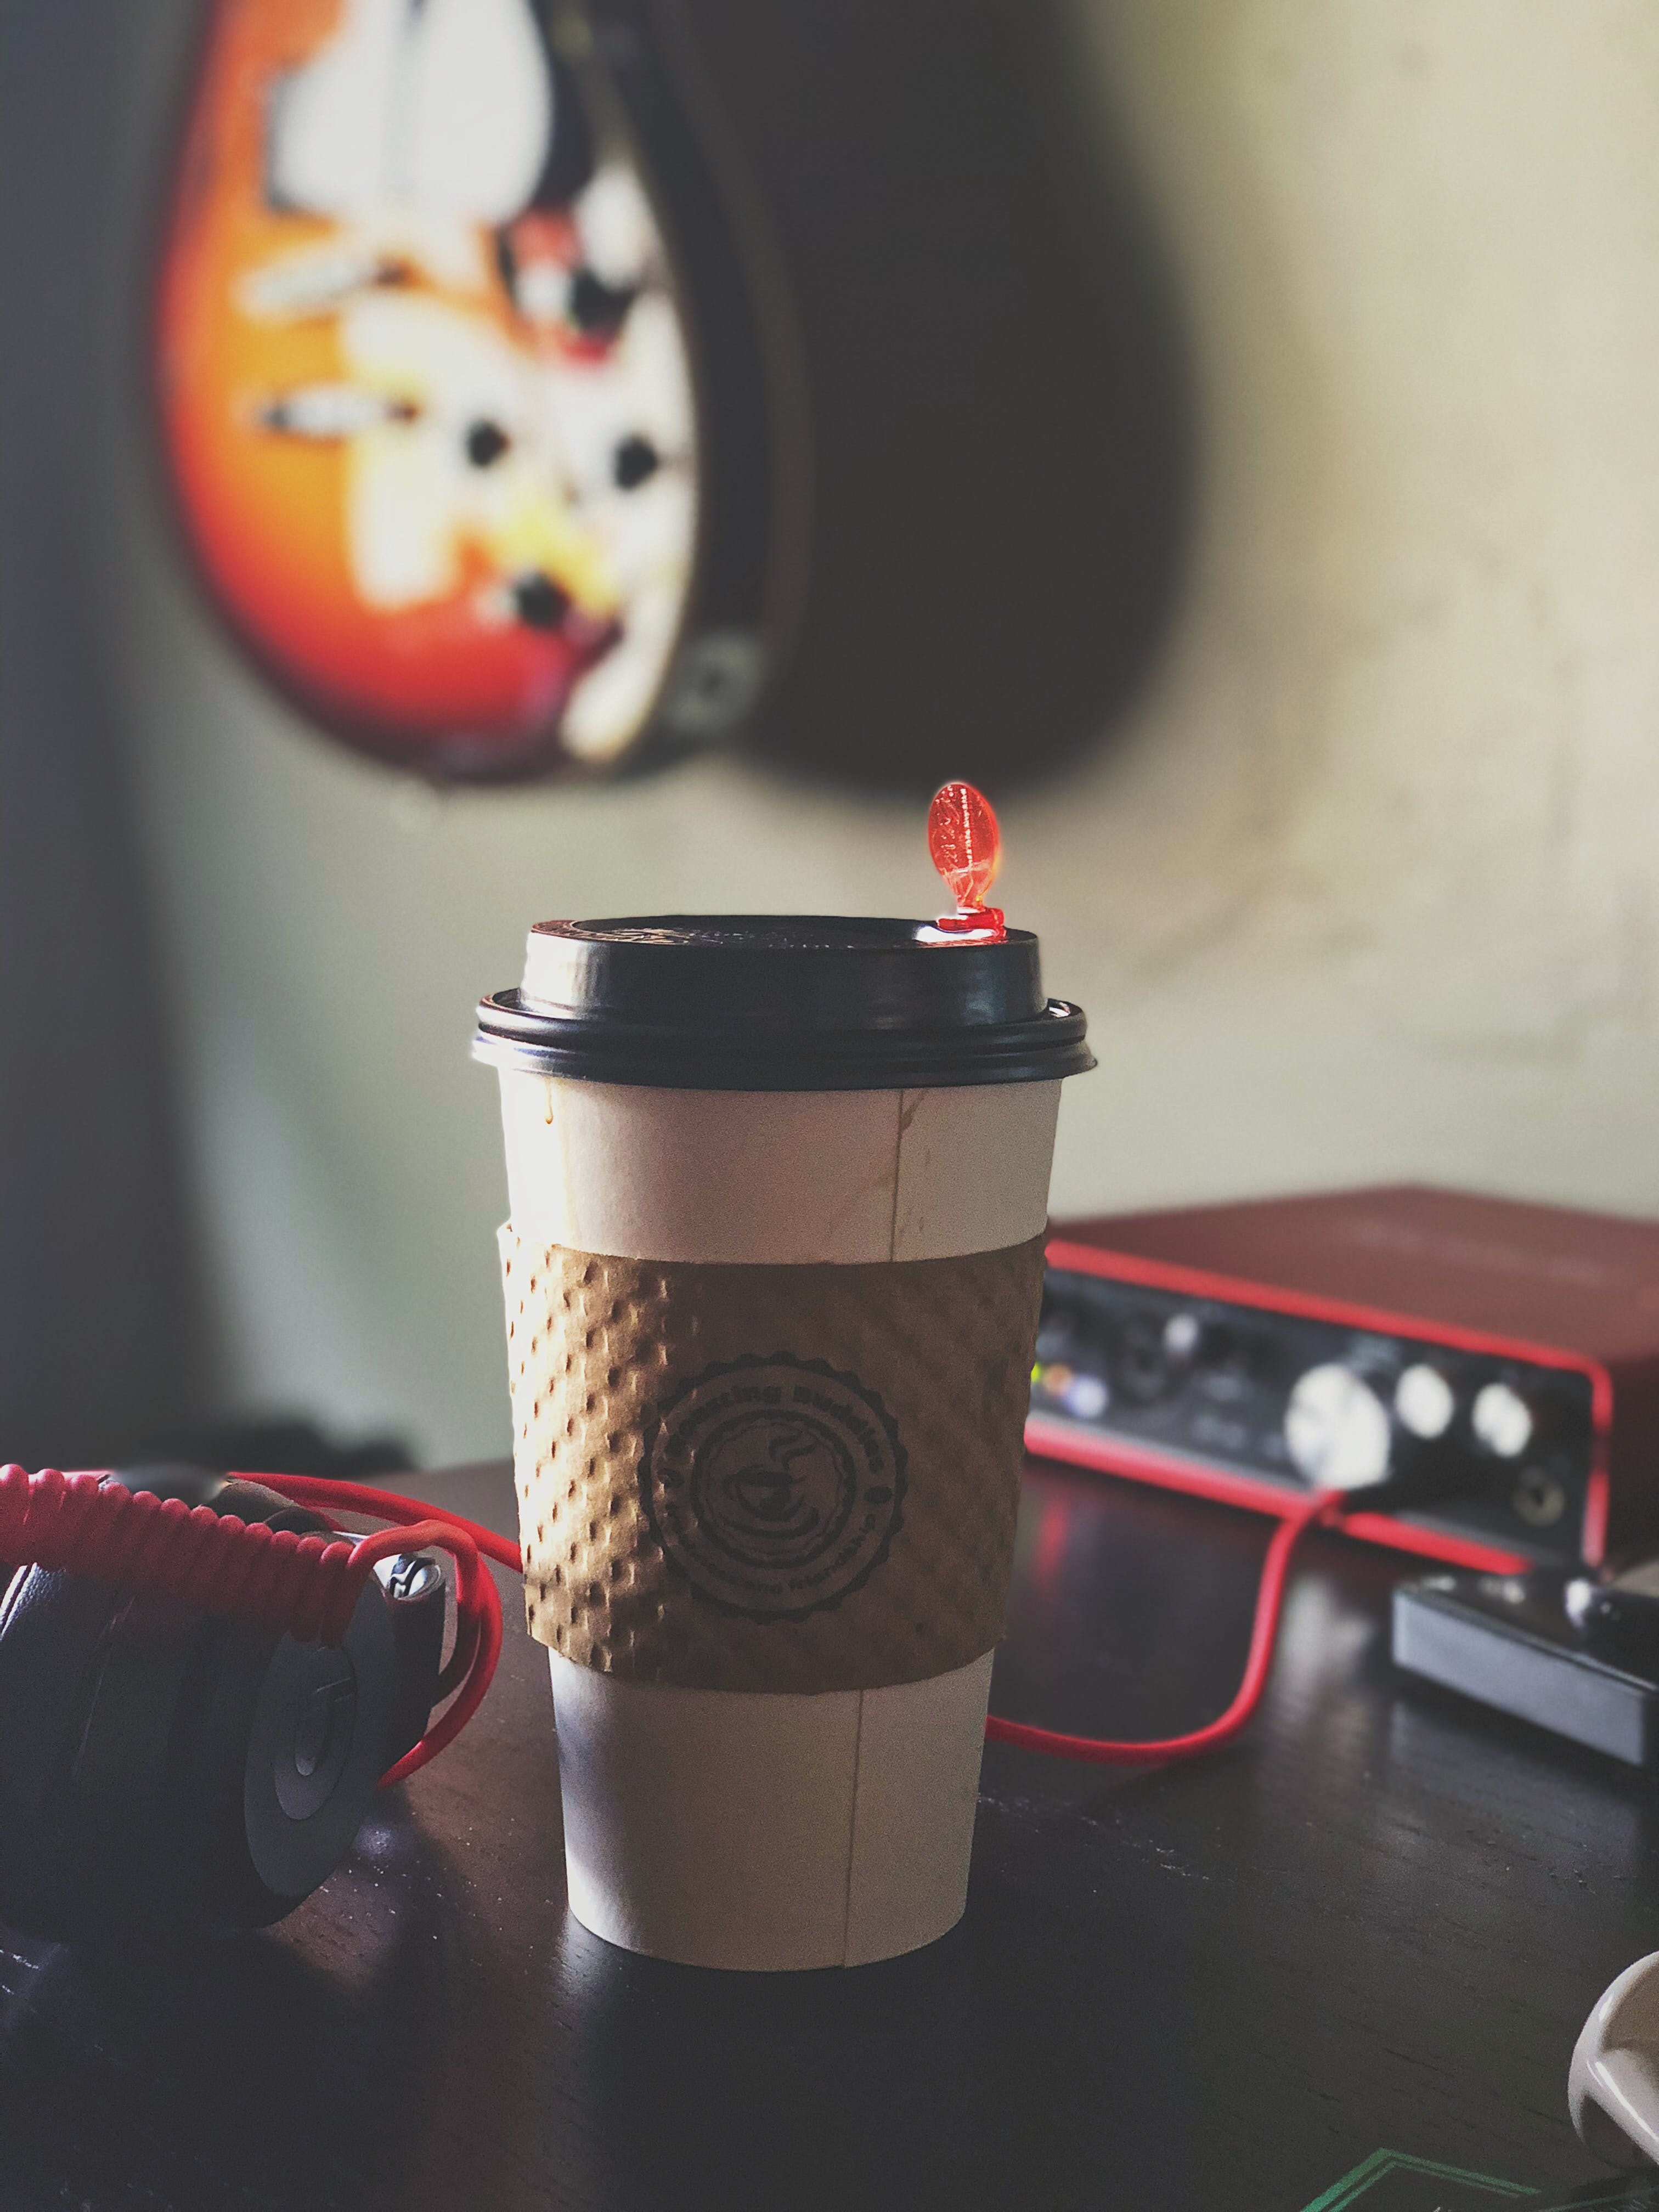 White and Brown Labeled Plastic Coffee Cup on Brown Tabletop Near Black Multimedia Player